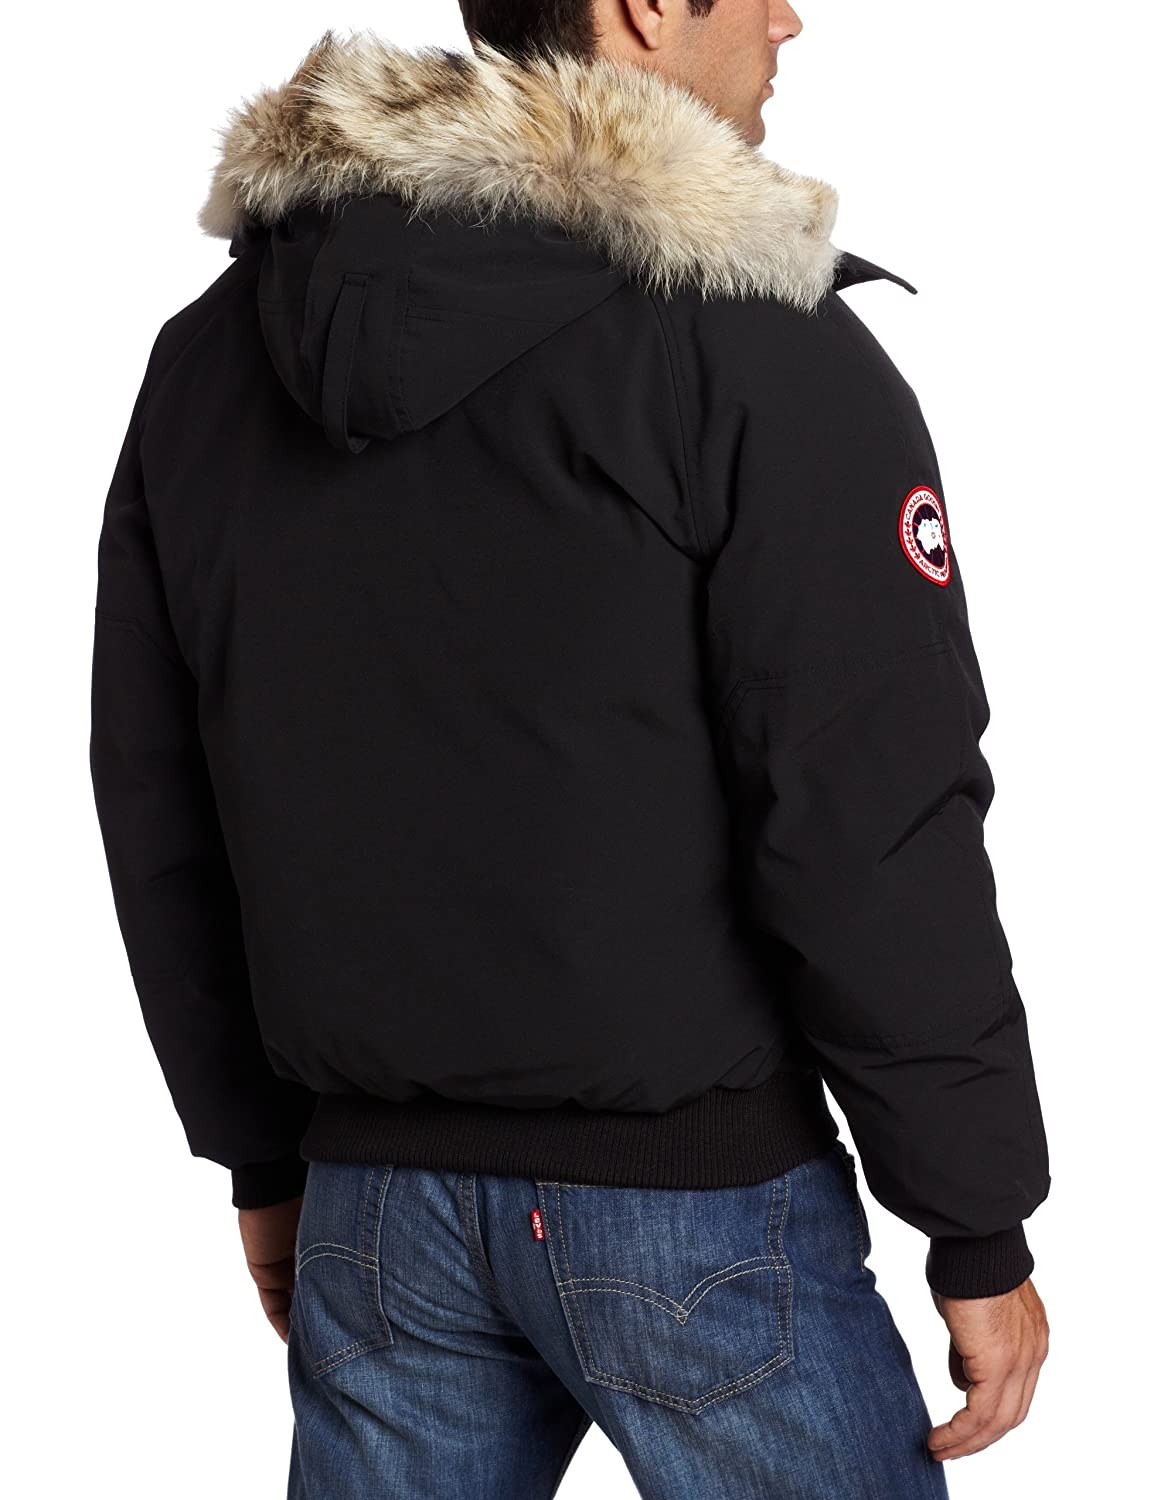 Canada Goose chateau parka sale authentic - Amazon.com: Canada Goose Men's Chilliwack Front-Zip Jacket with ...